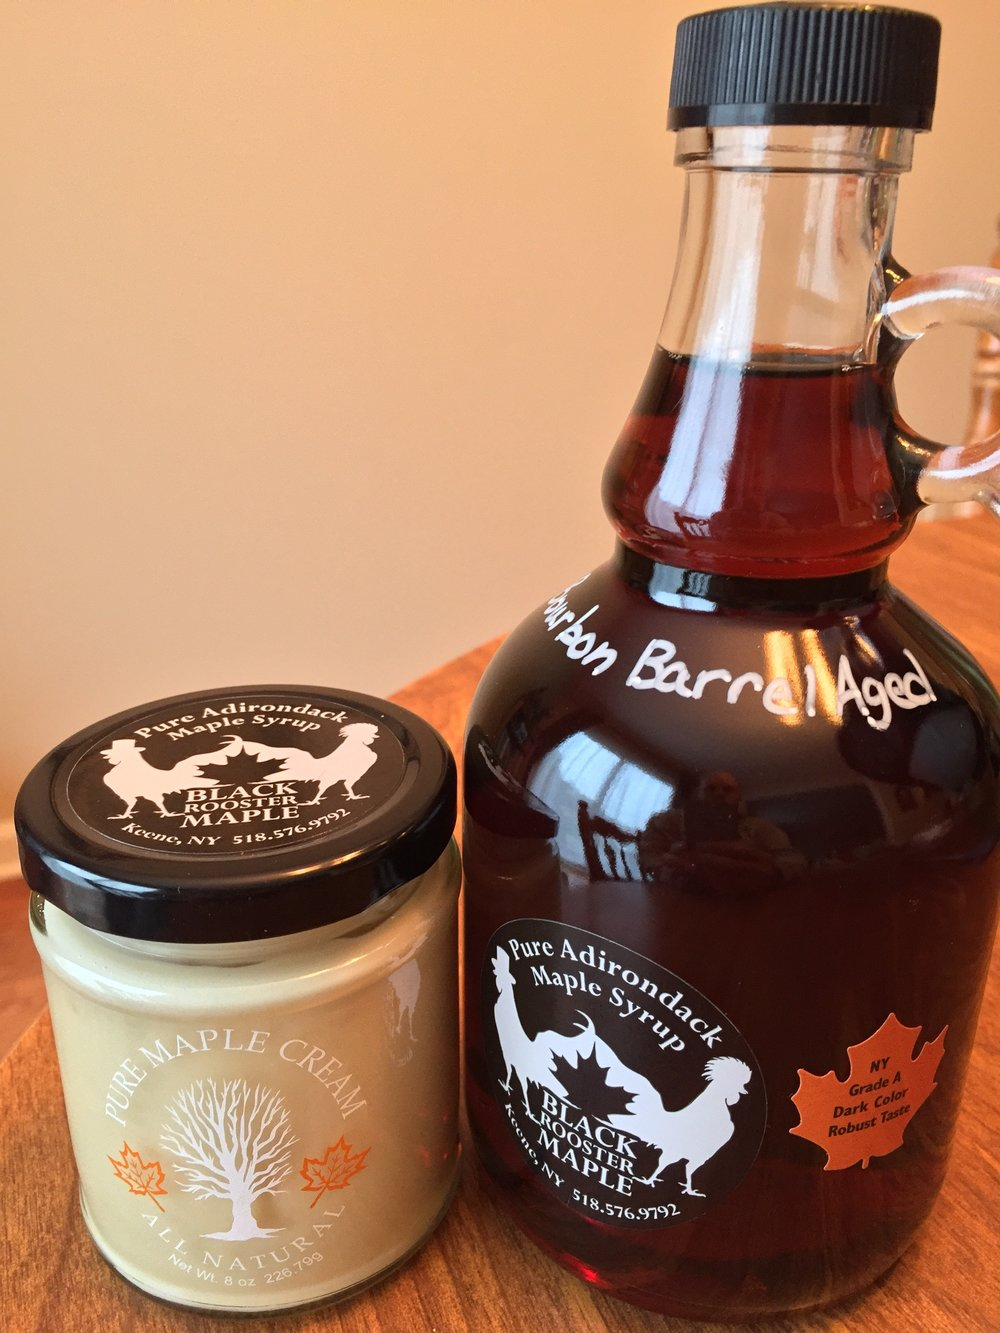 Black Rooster maple products come in handsome packaging.